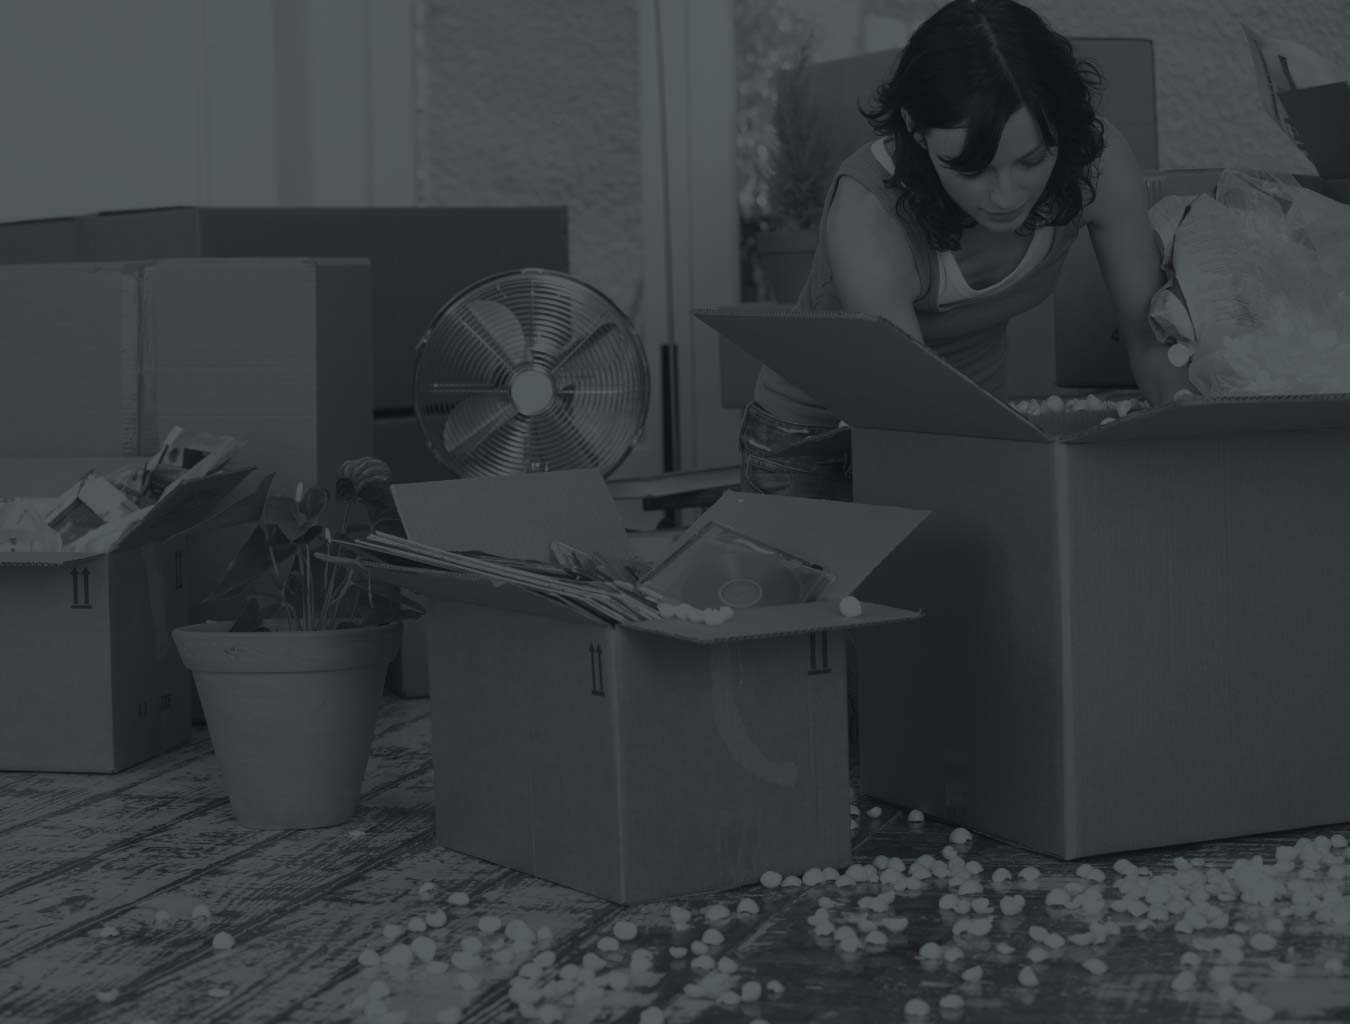 black and white image of woman unpacking